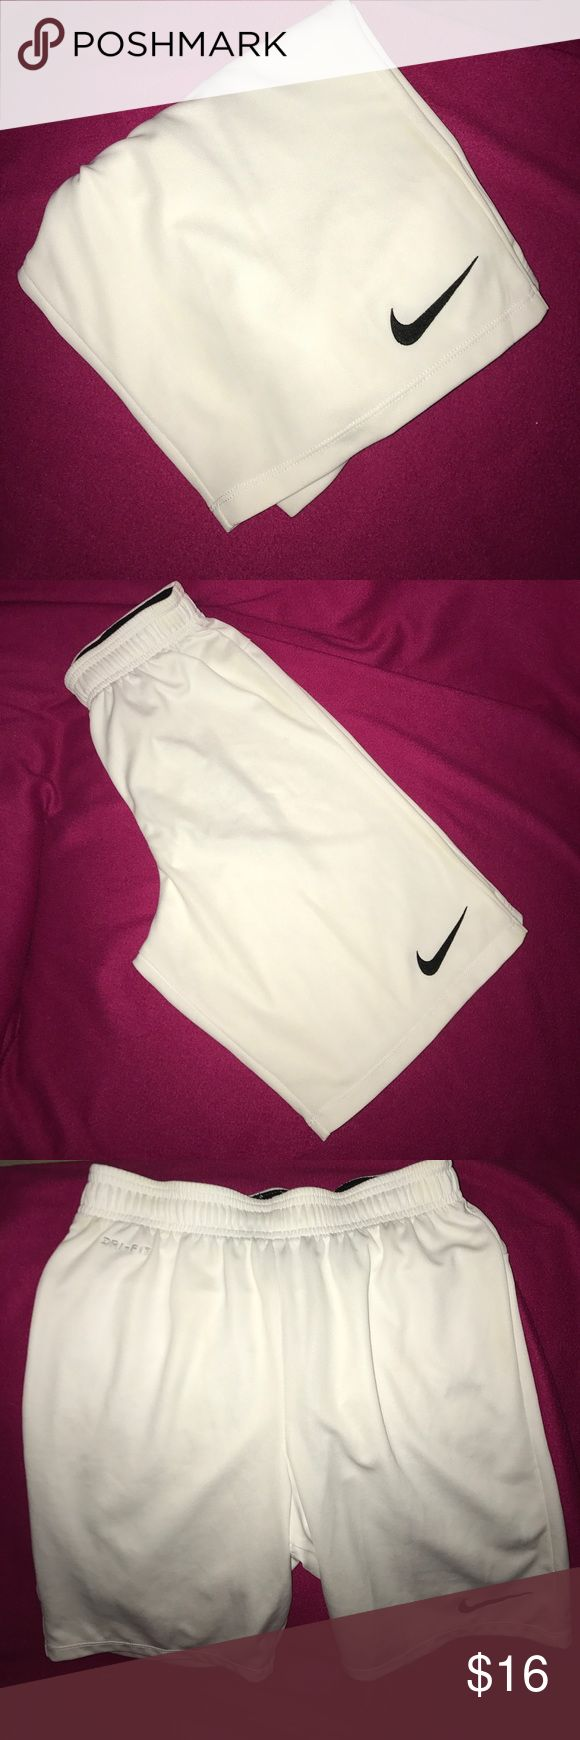 Nike Men's Shorts A pair of Men's size Small solid white Nike shorts with black drawstrings a black logo and a black waistband on the inside the waistband also has elastic the shorts are in great condition from a smoke and pet free house Nike Shorts Athletic